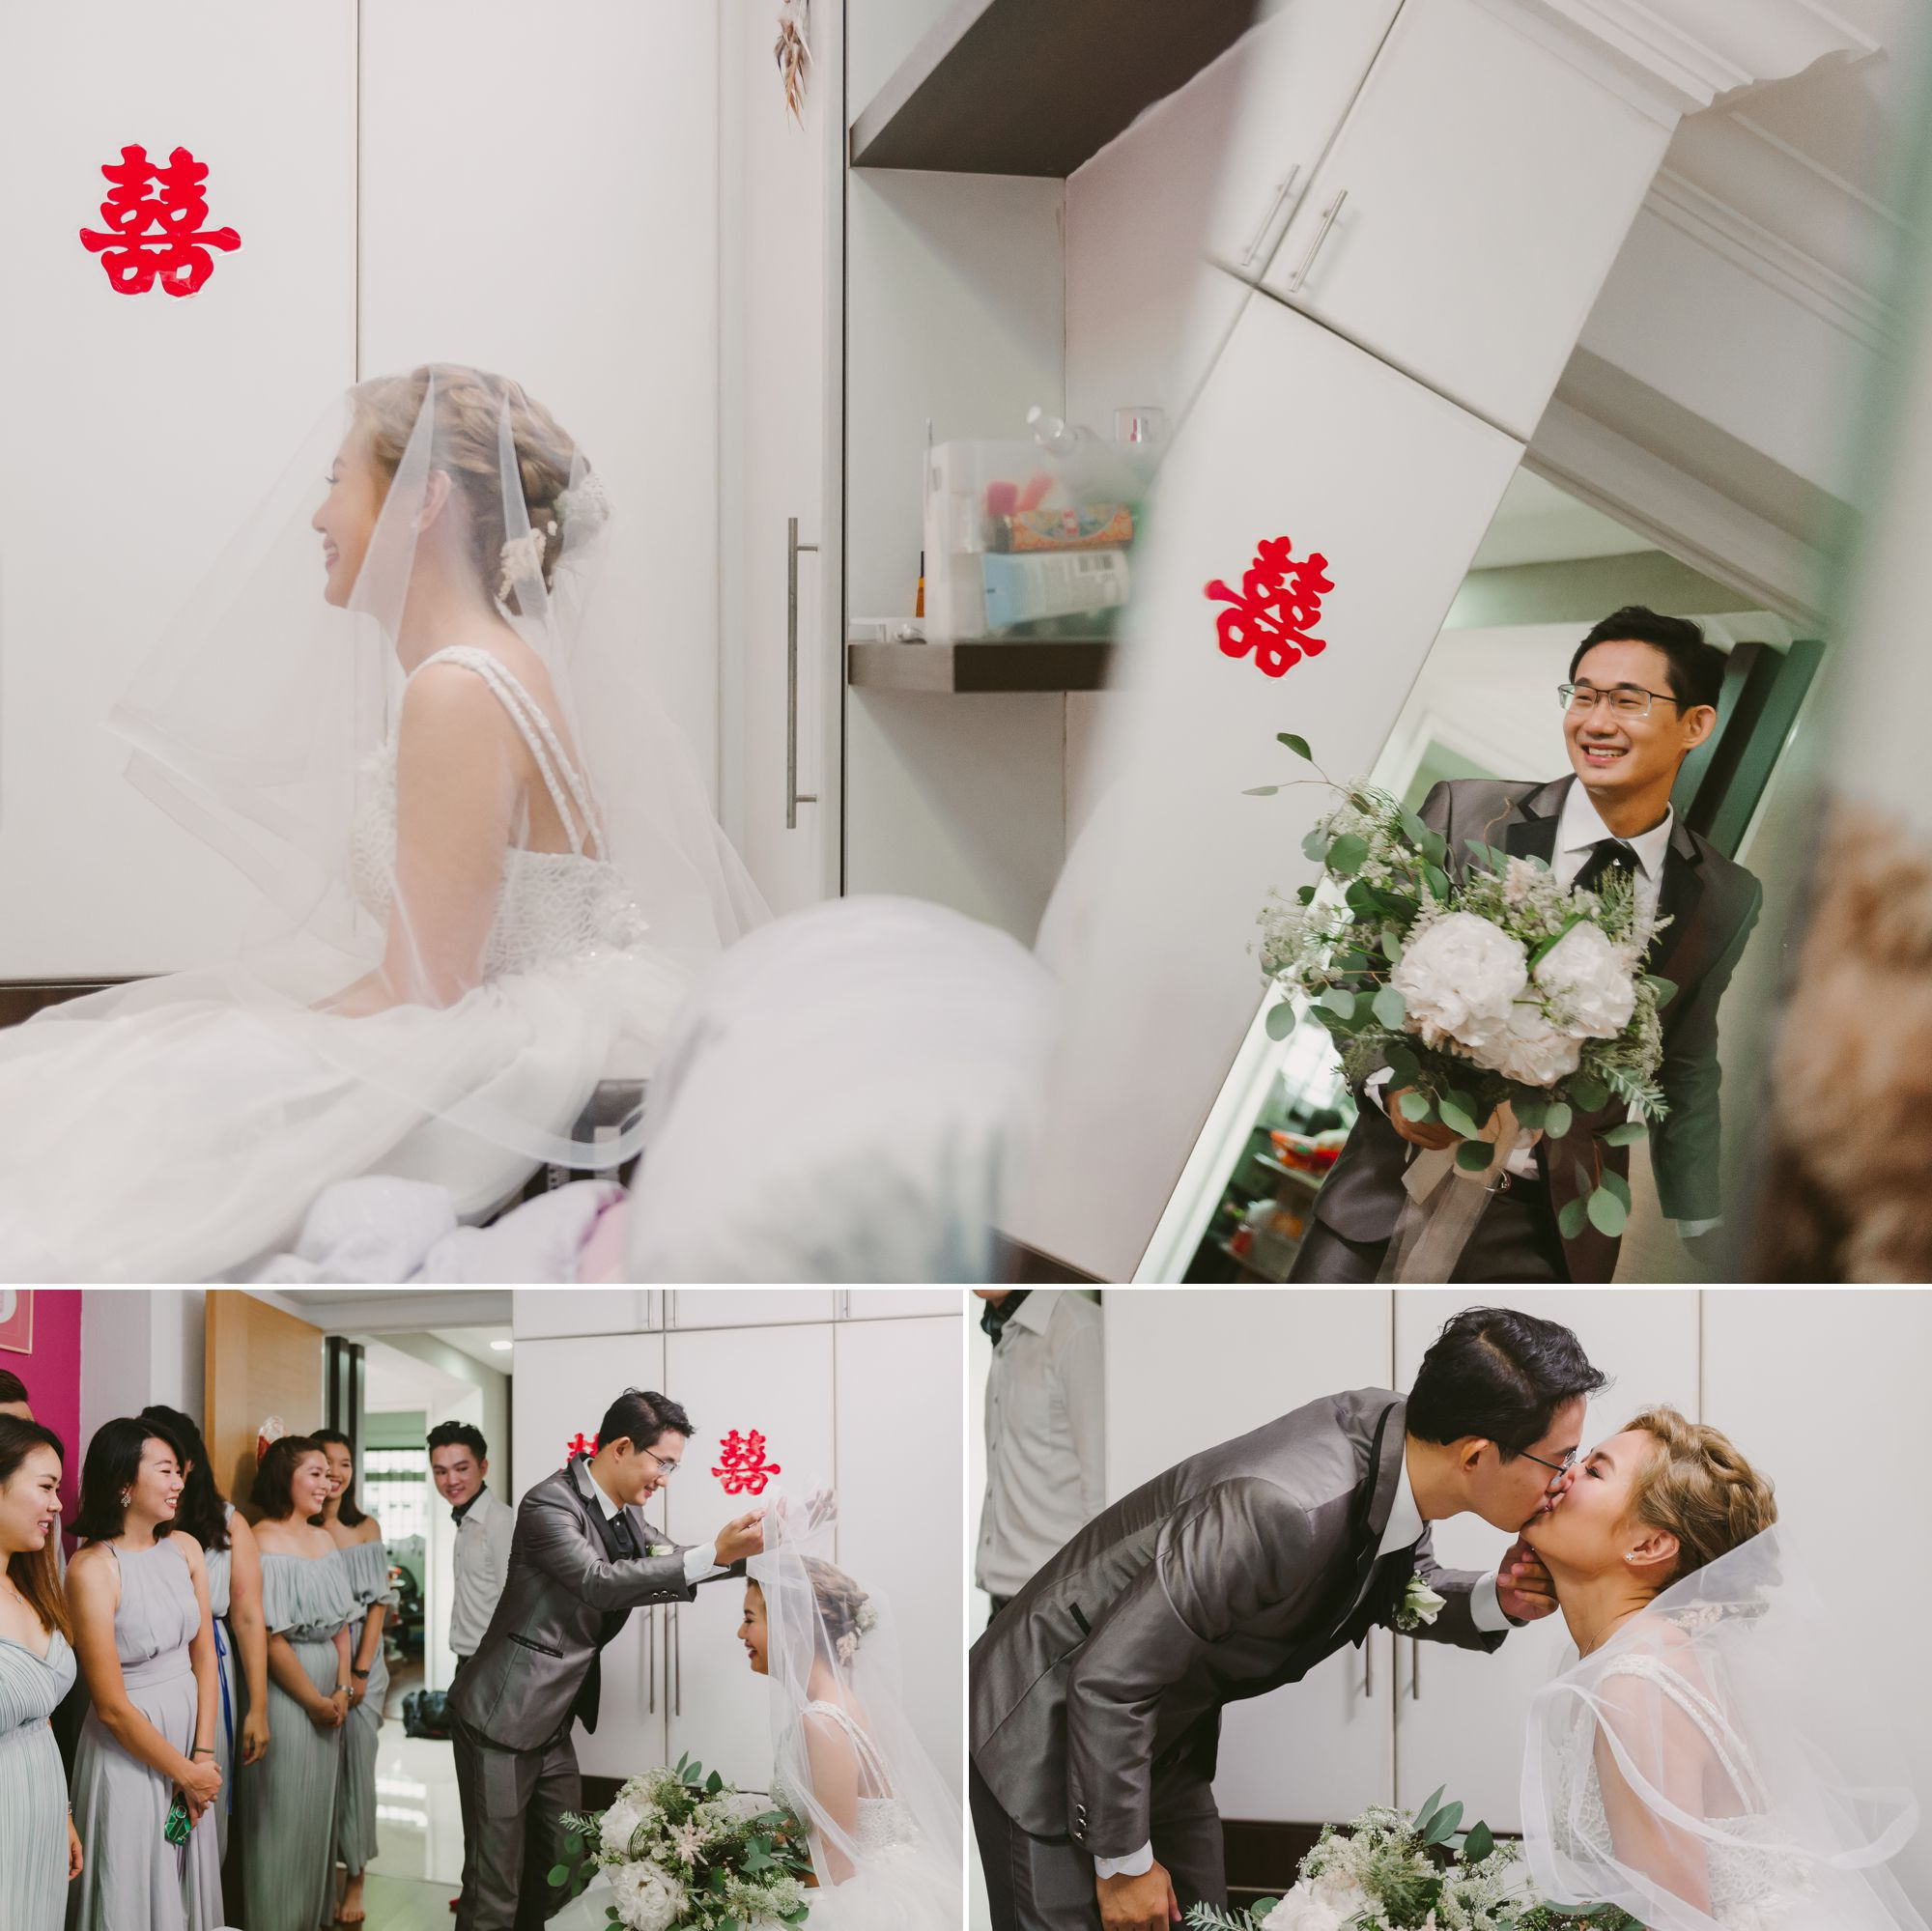 wedding_photographer_singapore 13.jpg